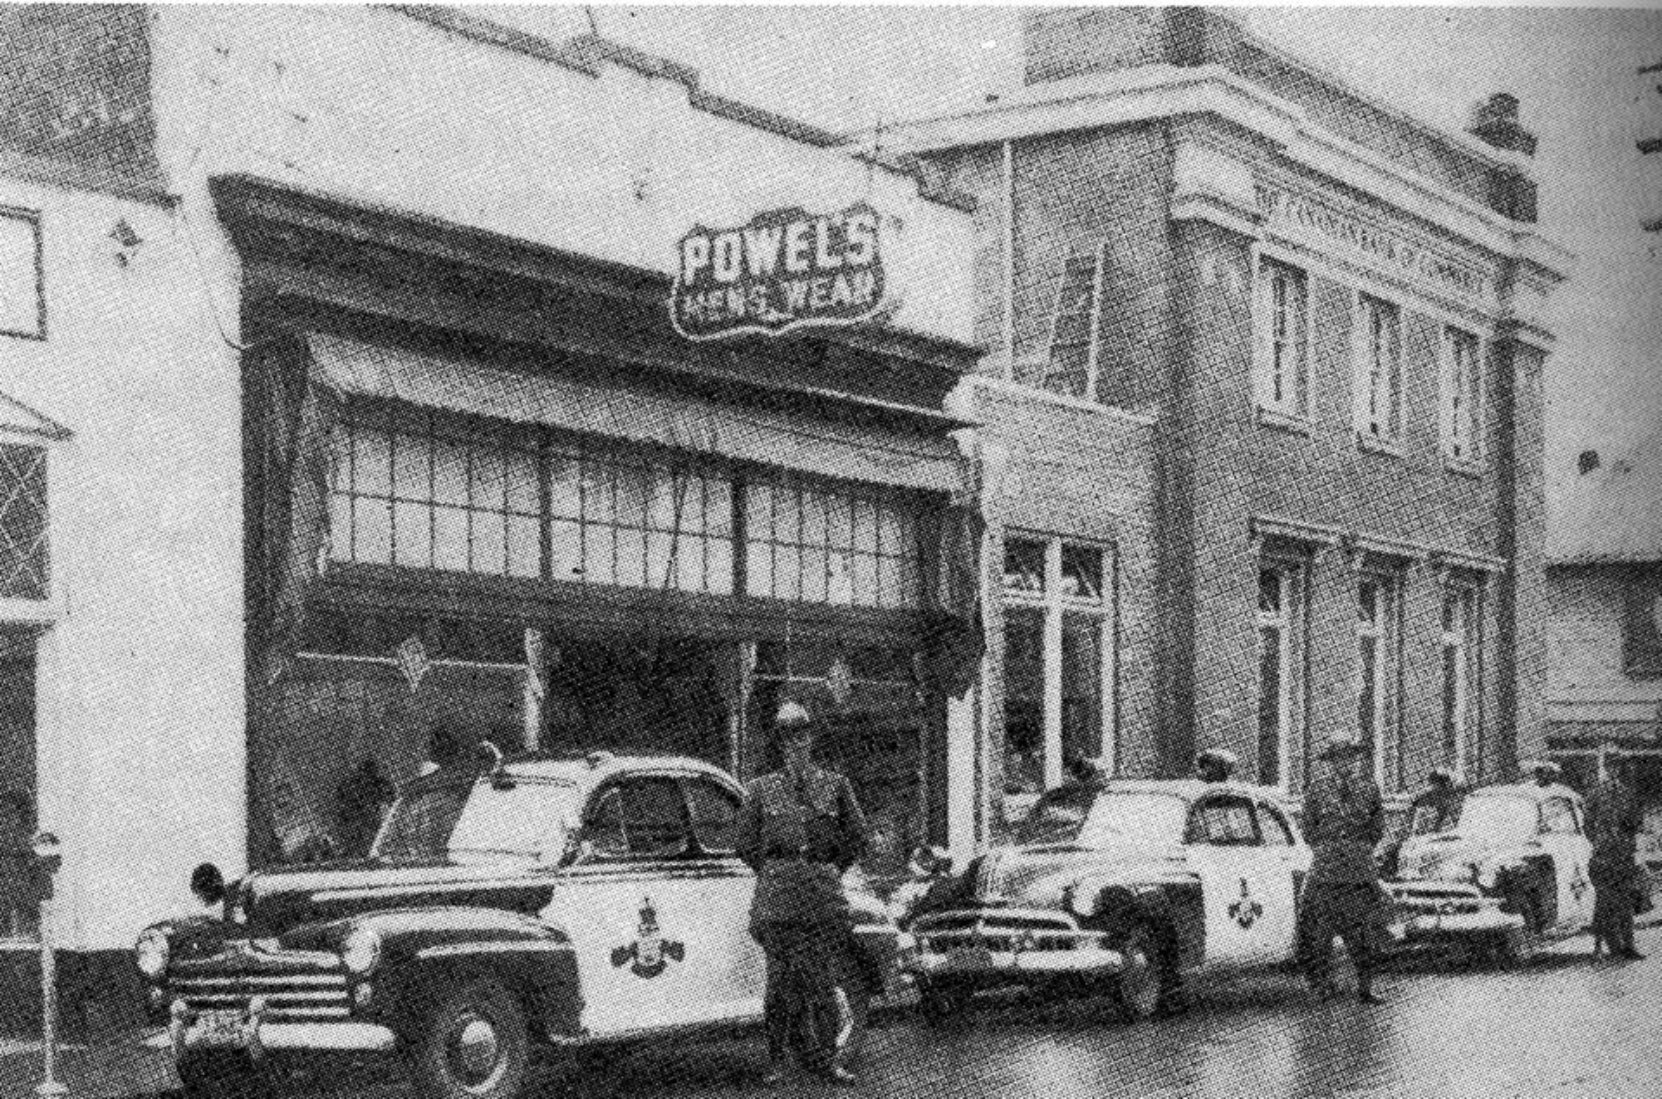 45 Craig Street as Powel's Men's Wear, circa 1950. The building on the right was the Canadian bank of Commerce, now demolished. The CIBC branch now stands on that site. (Note: we are currently checking for the source of this photo)